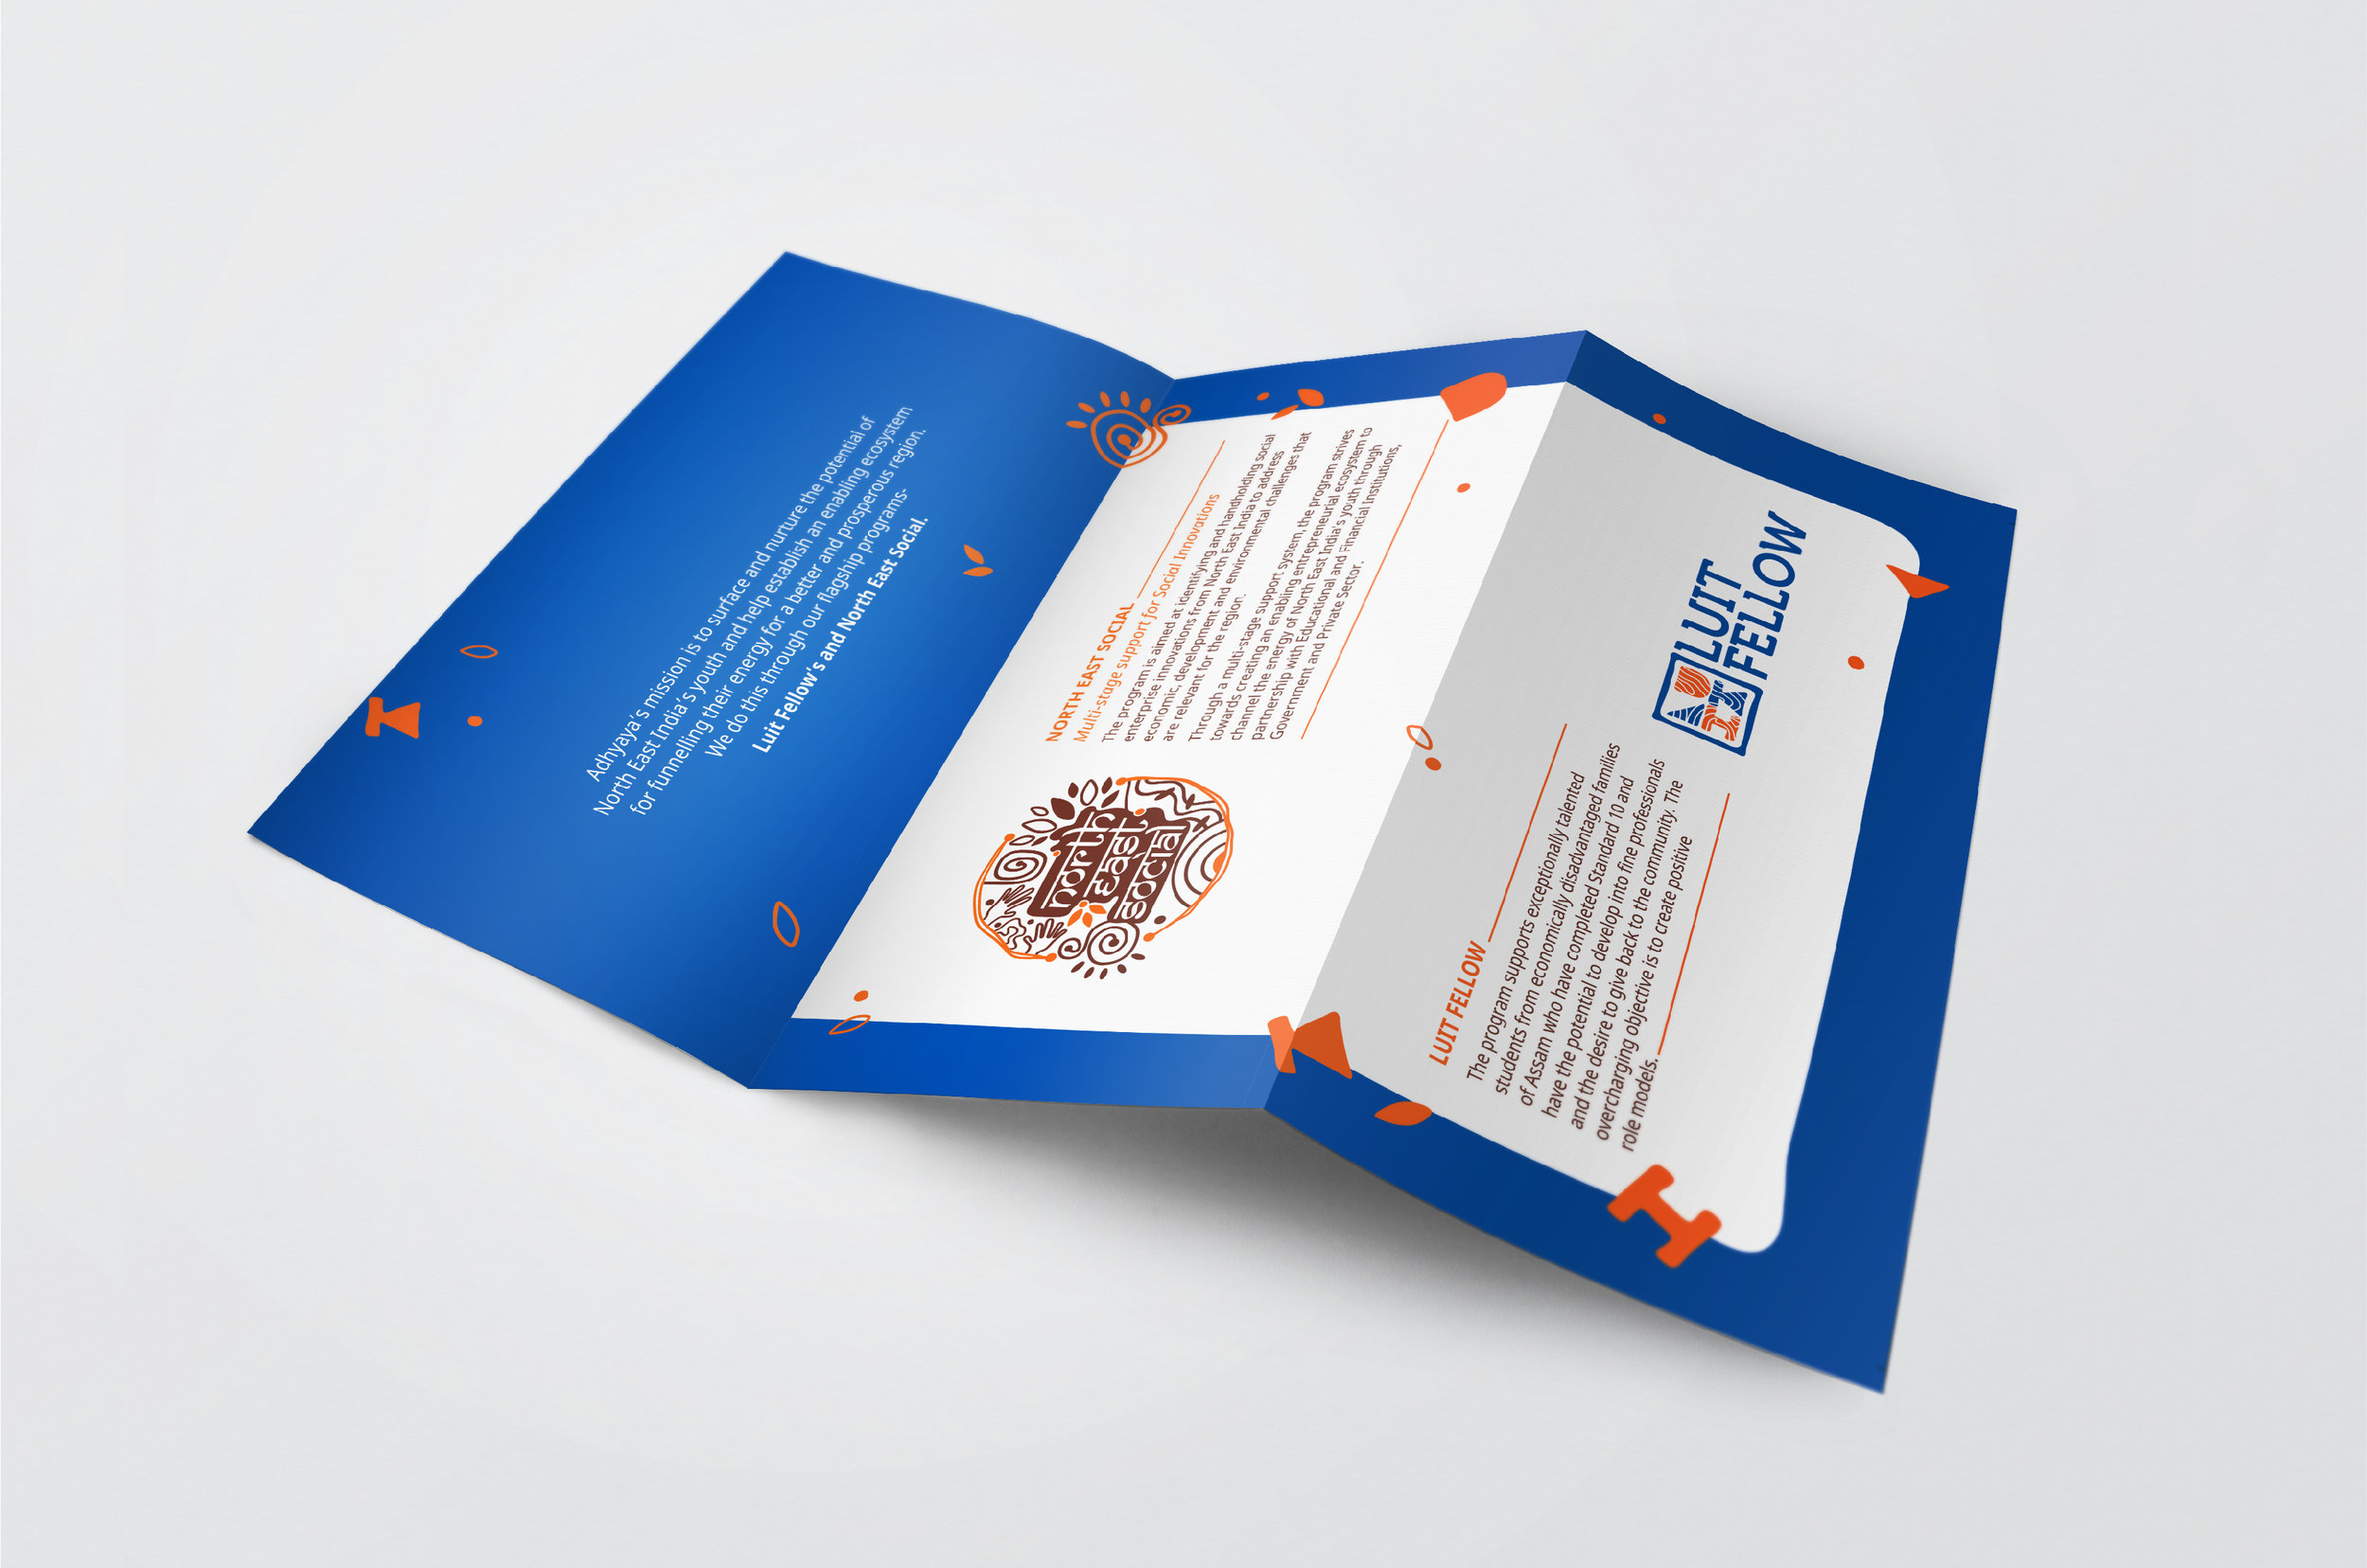 Luit Fellow_Branding_Elephant Design 7.jpg